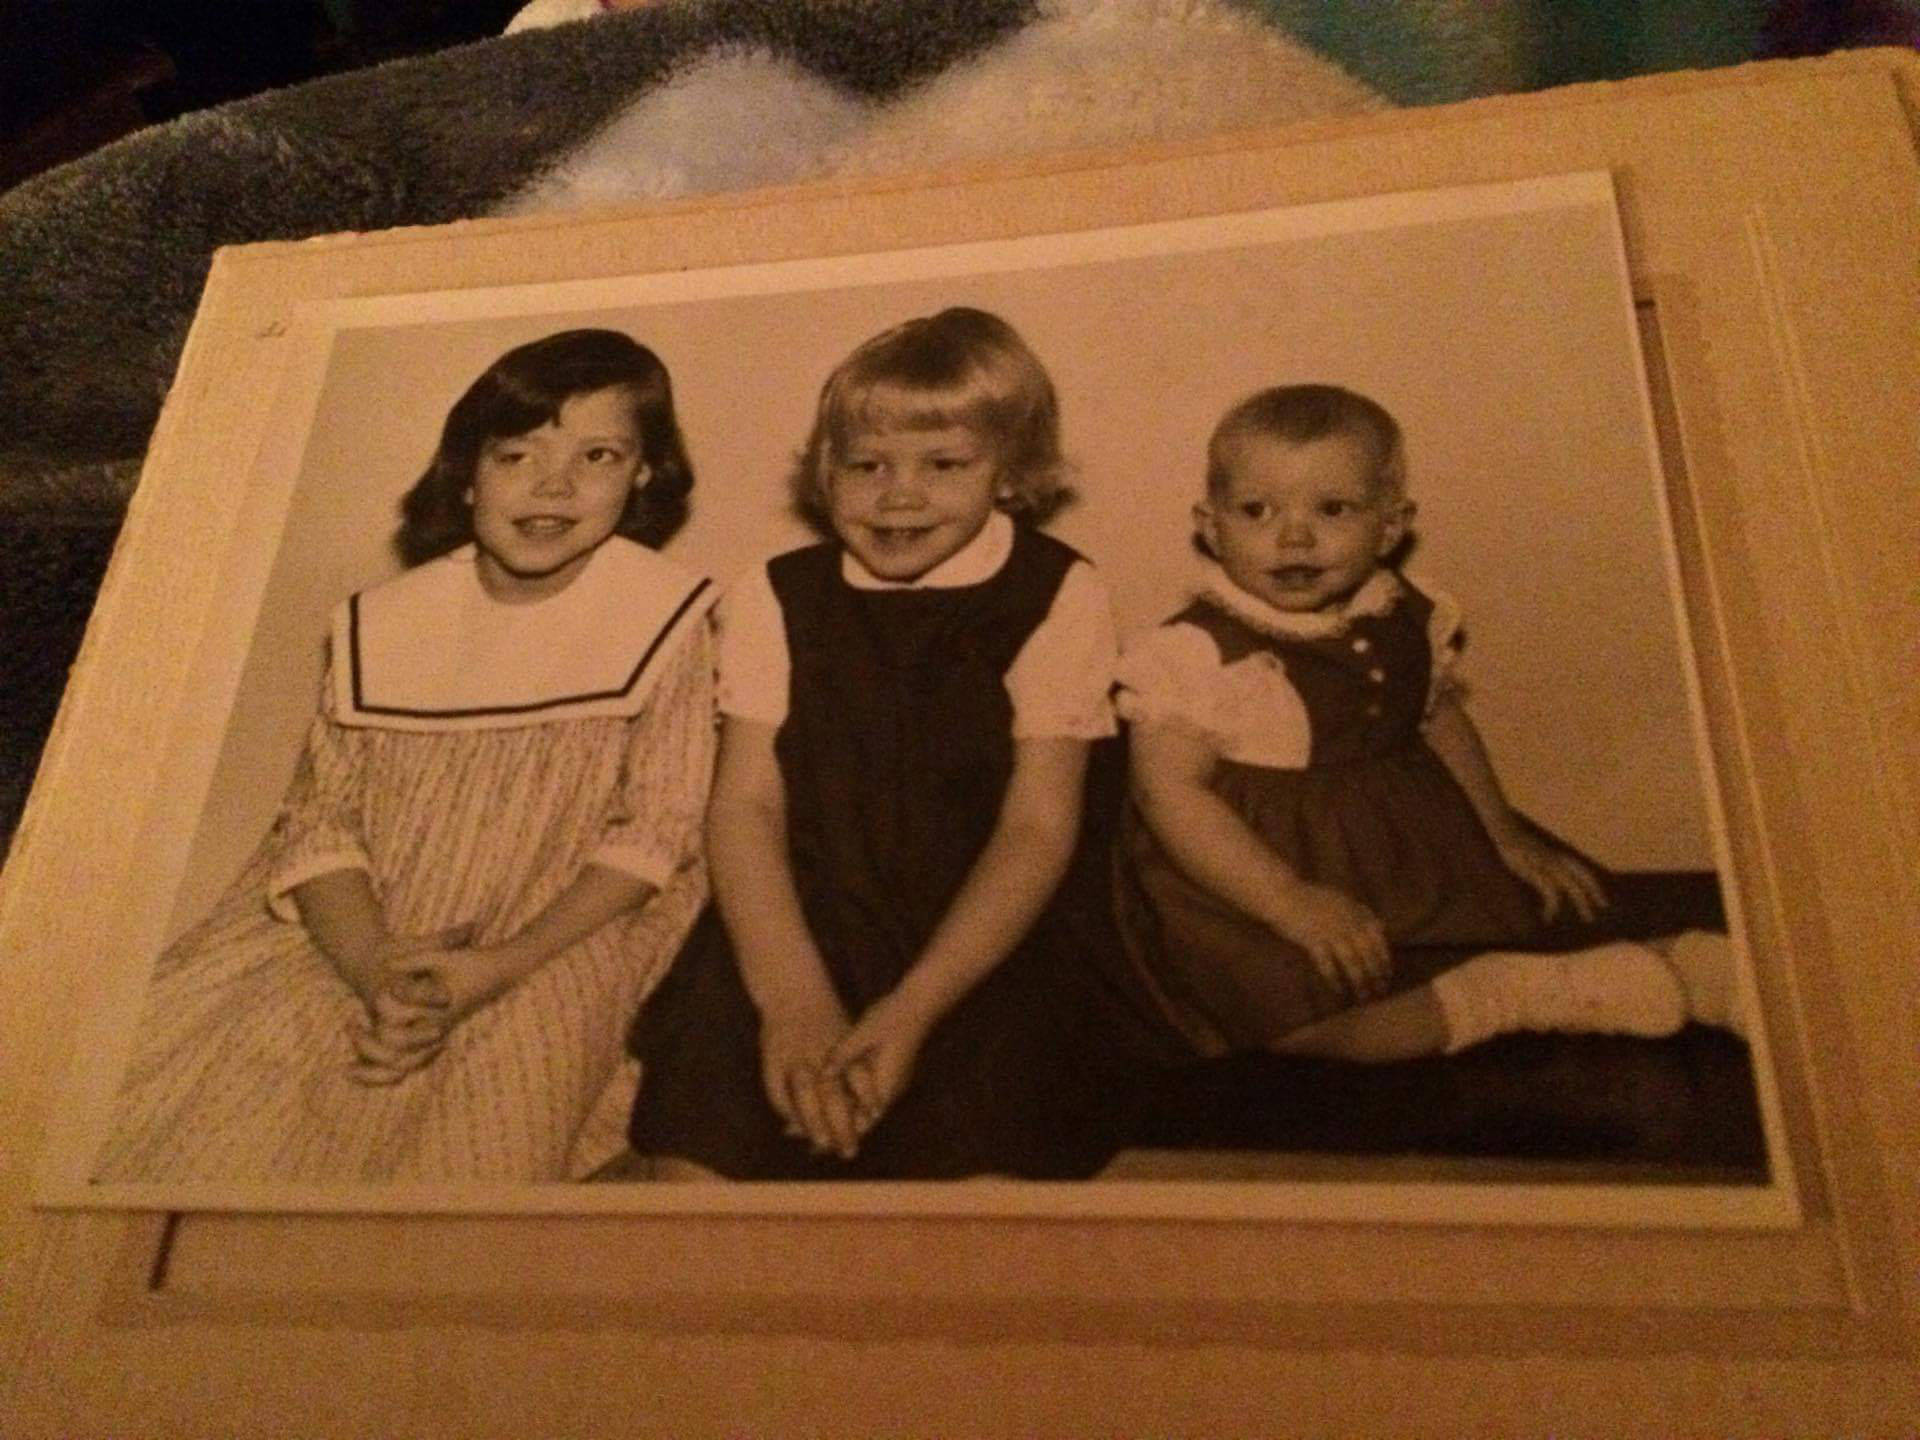 Beth and her sisters Rosemary and Brenda from their younger days. (Submitted)